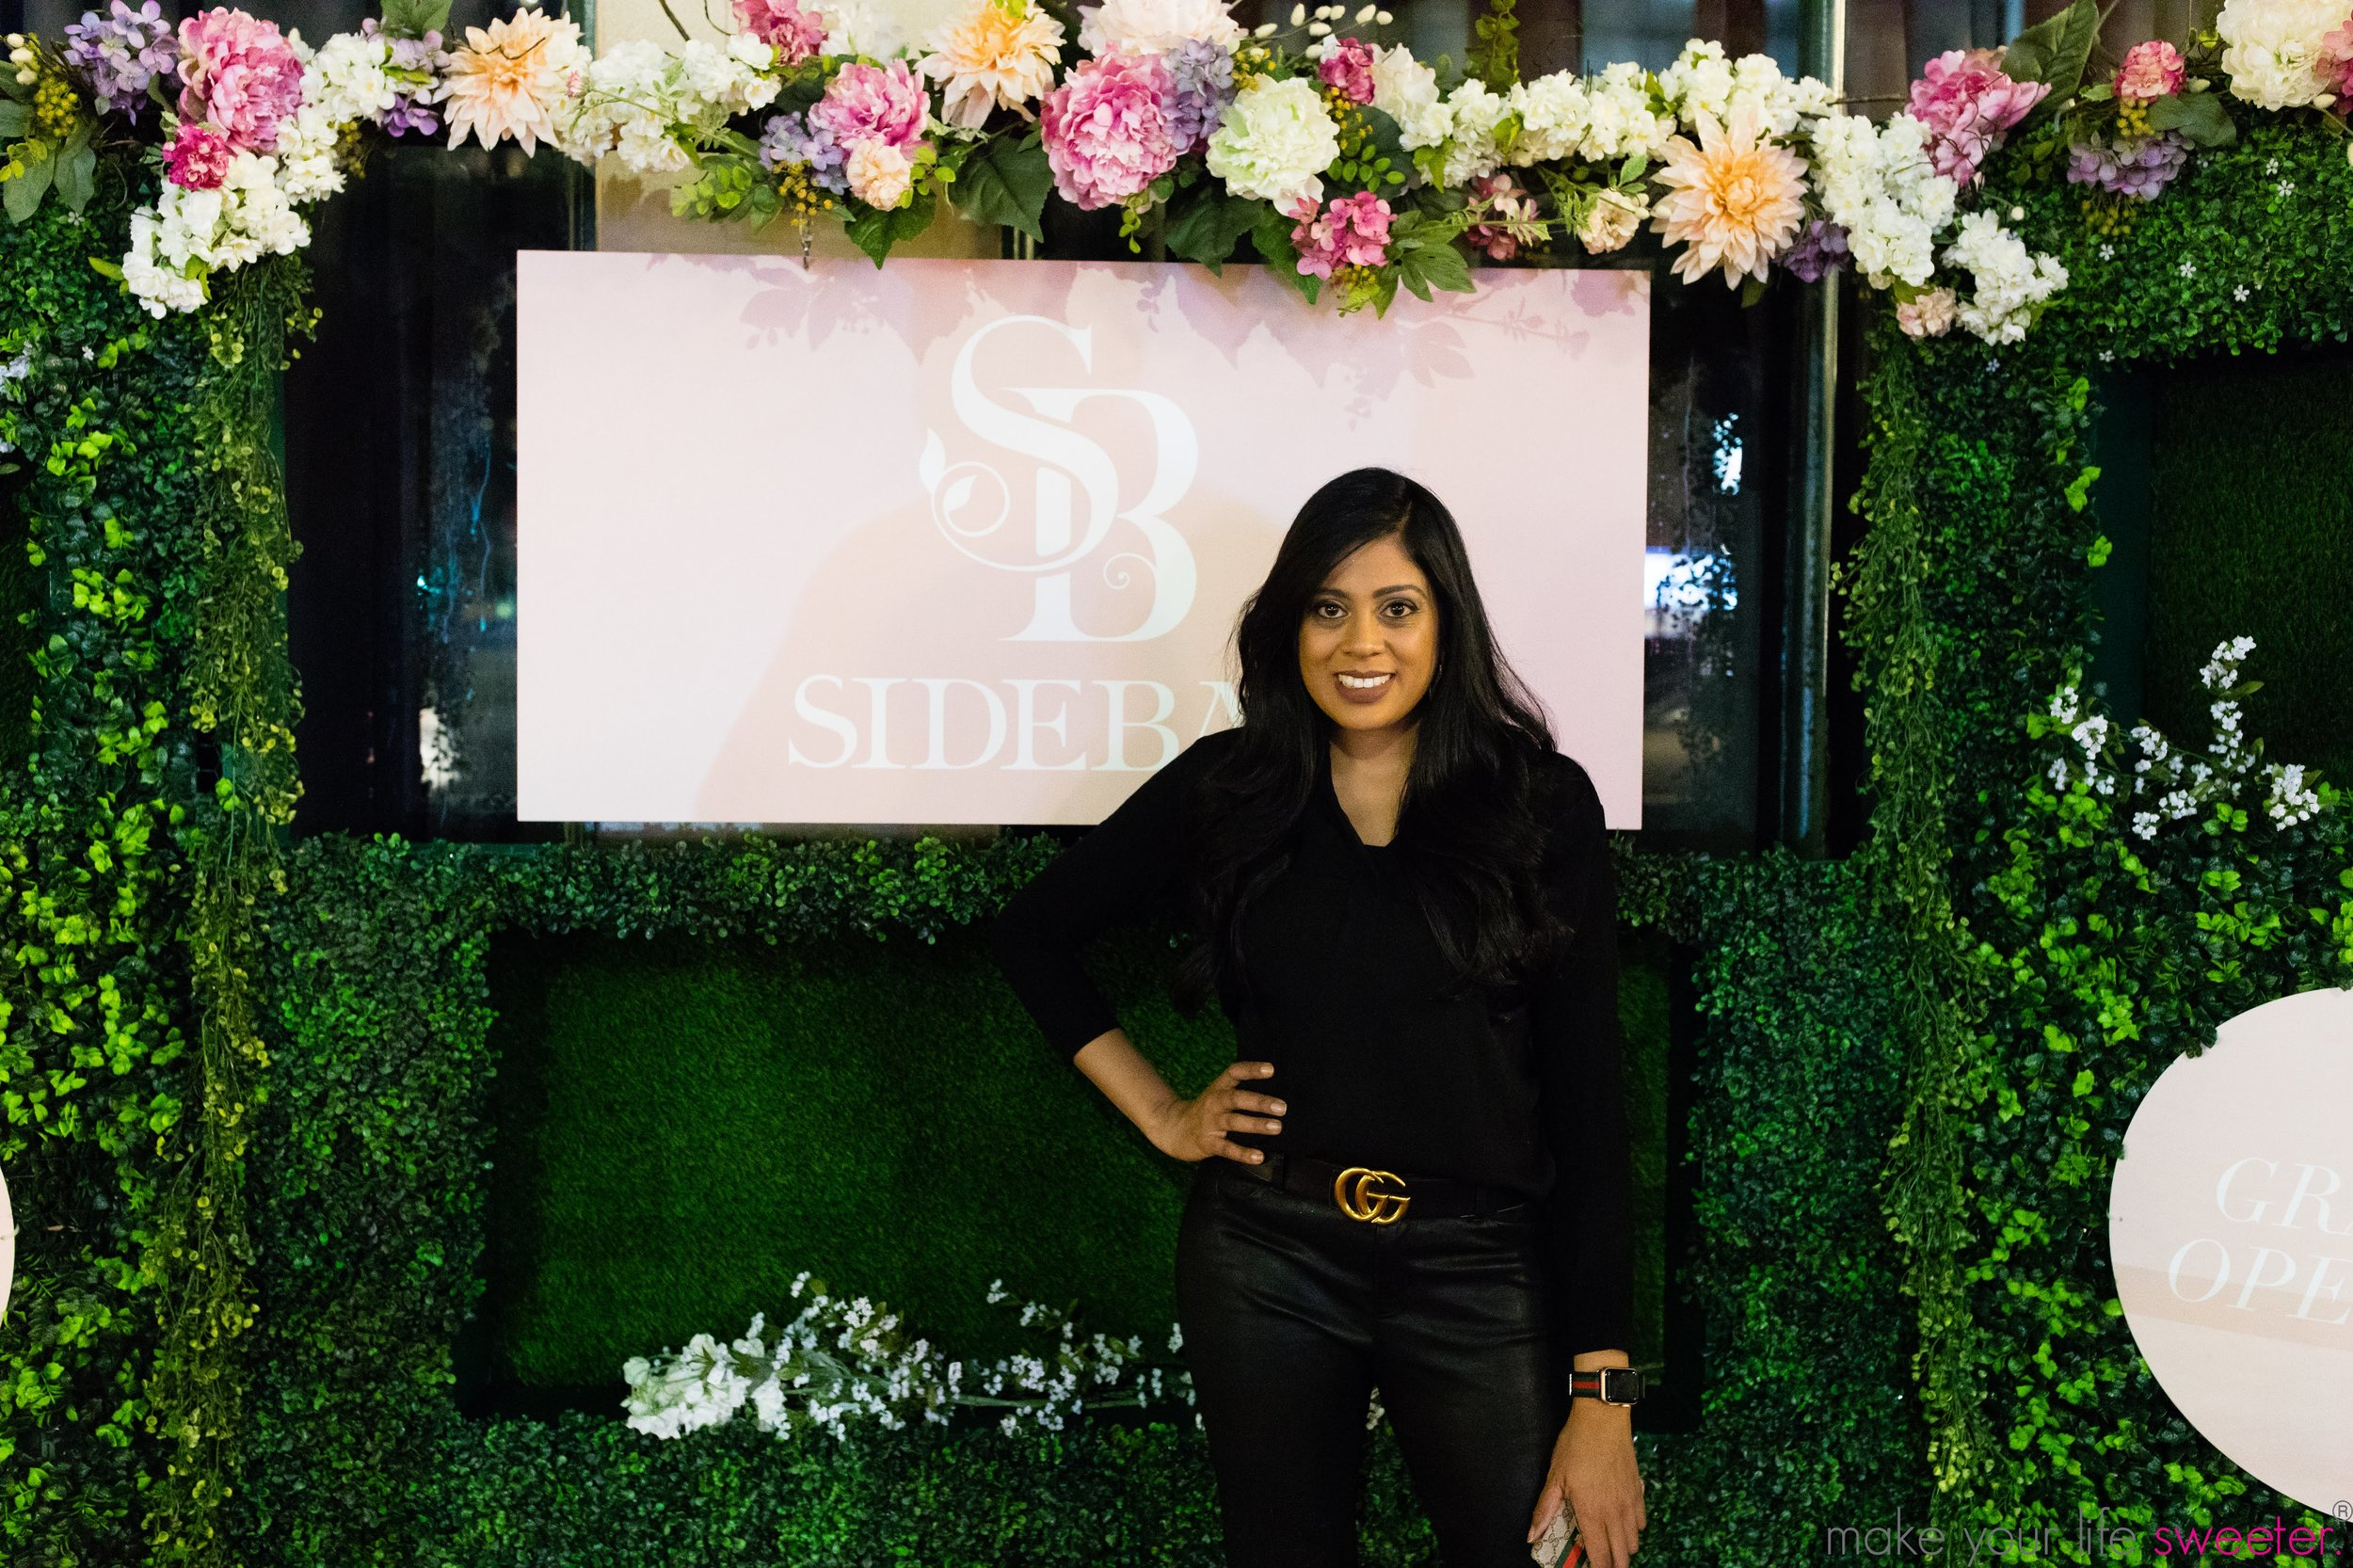 Make Your Life Sweeter Events - Yasmeen Tadia at the SideBar Grand Opening in San Diego